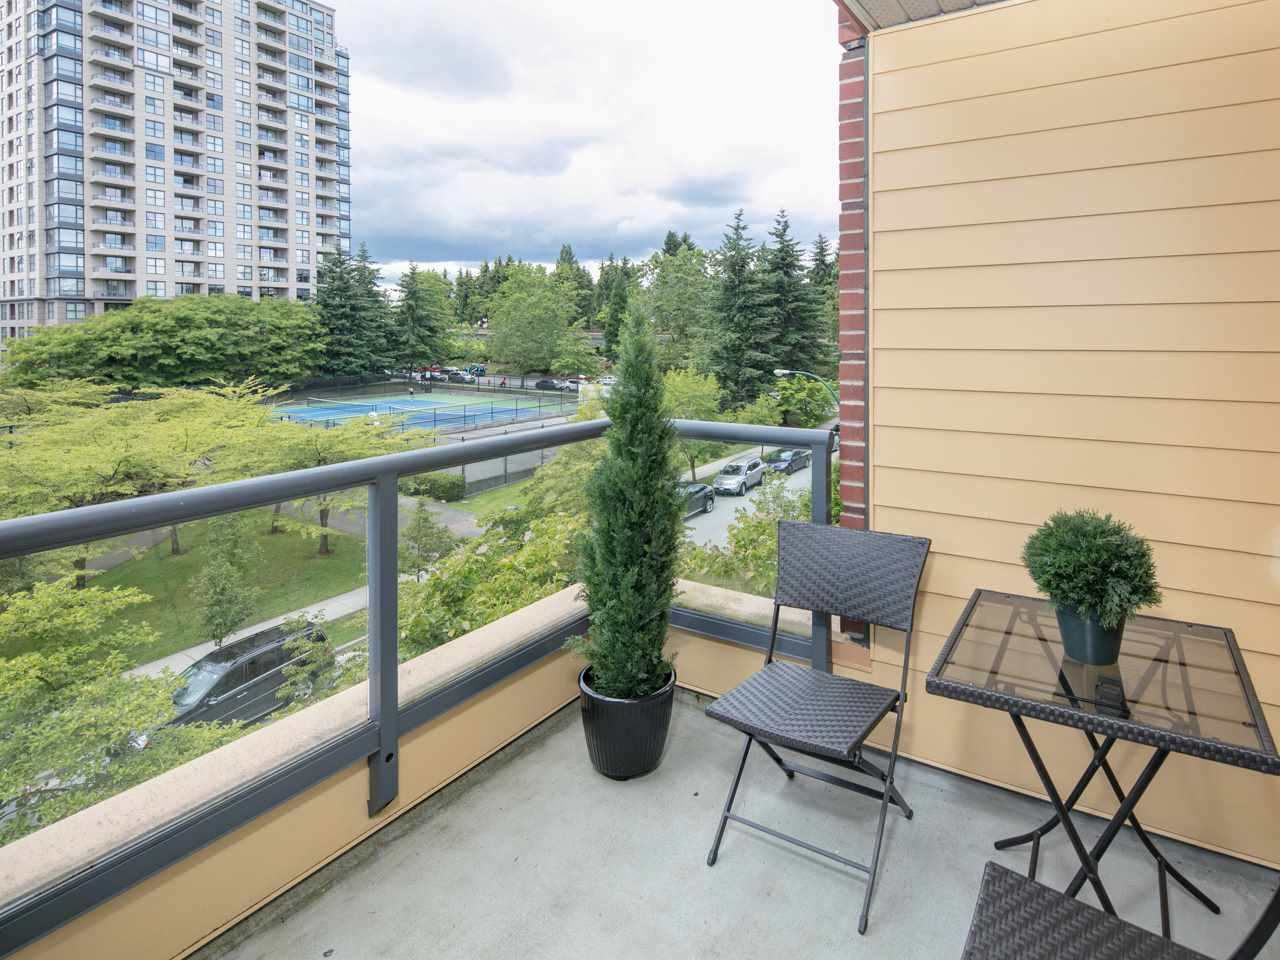 Photo 9: 409 3583 CROWLEY Drive in Vancouver: Collingwood VE Condo for sale (Vancouver East)  : MLS(r) # R2178966